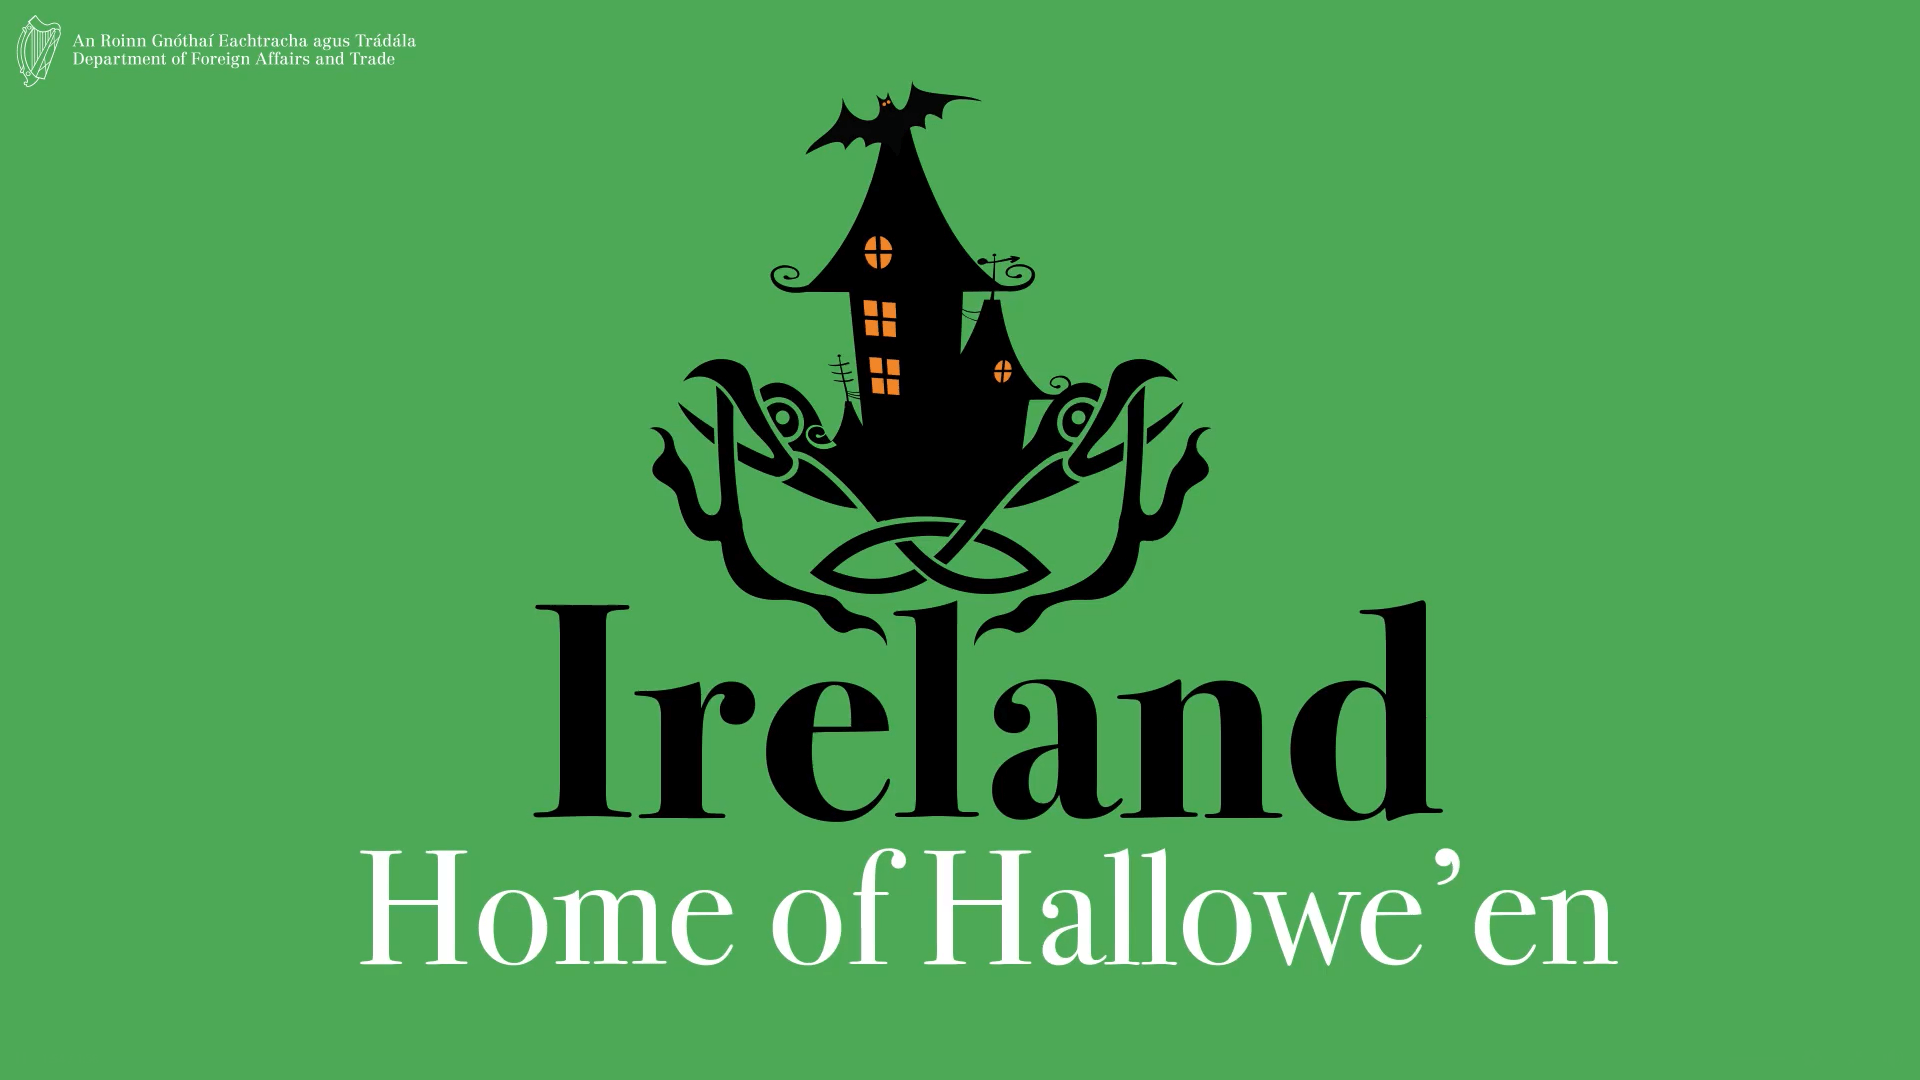 Department of Foreign Affairs and Trade - Ireland Home of Hallowe'en